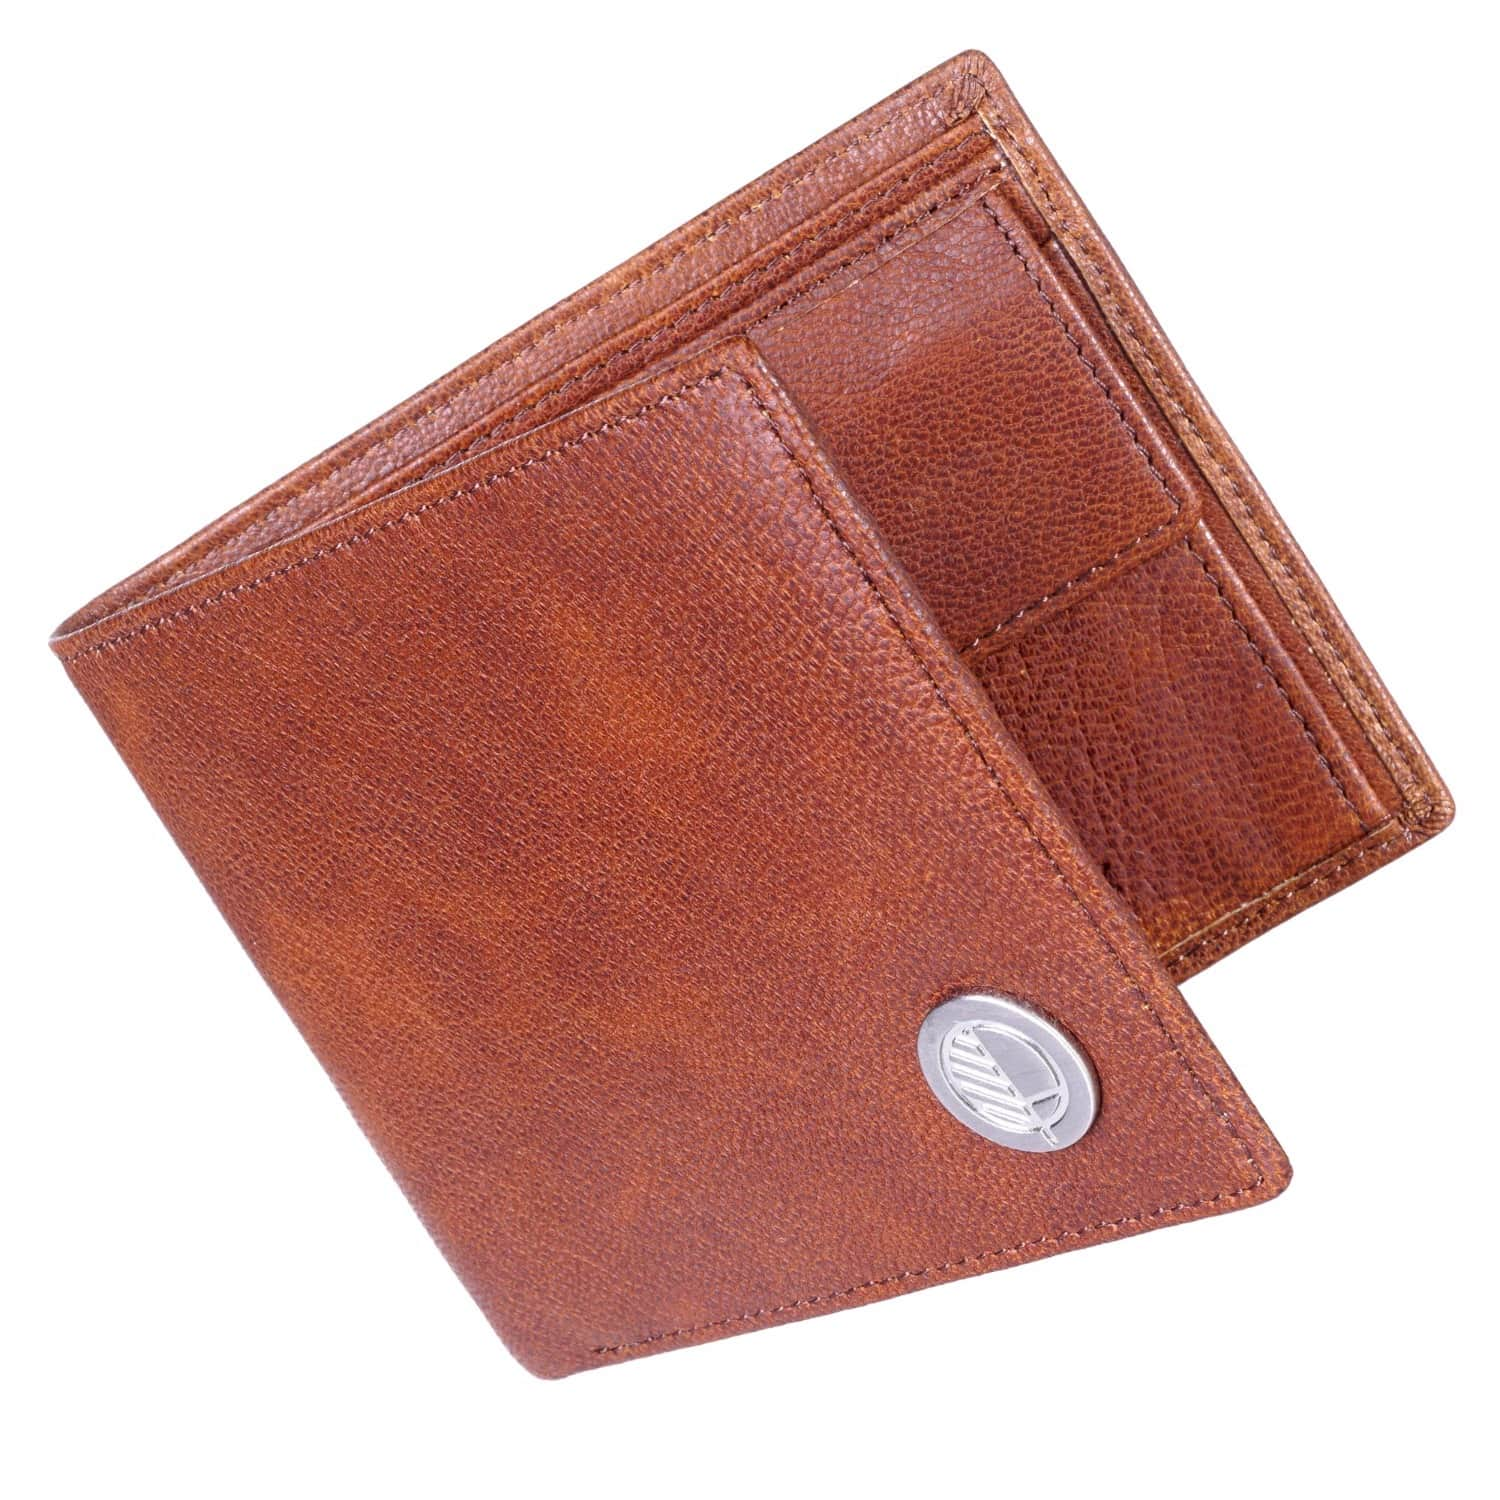 798a098677f8 Luxury English Leather Mens Billfold Wallet In Rustic Brown